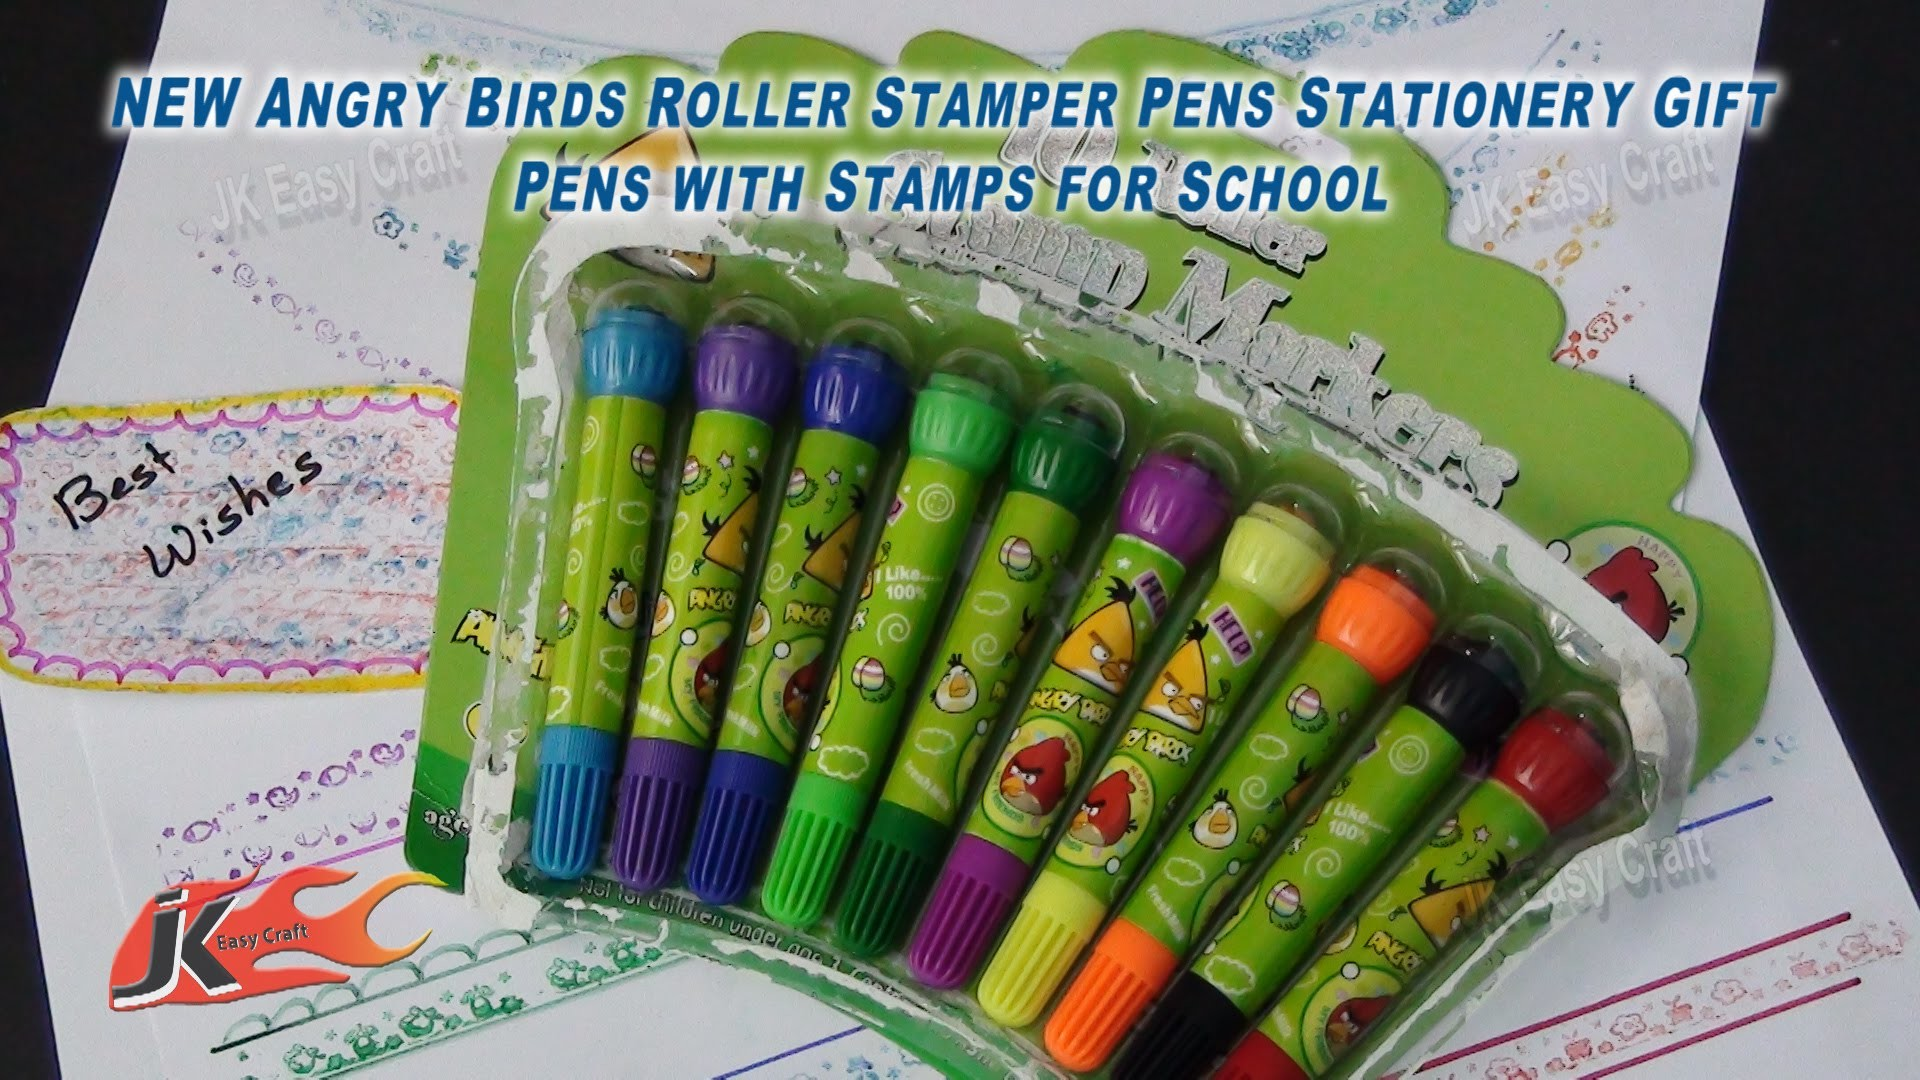 Angry Birds Roller Stamper Pens Stationery Gift | Pens with Stamps for School | JK Easy Craft 080